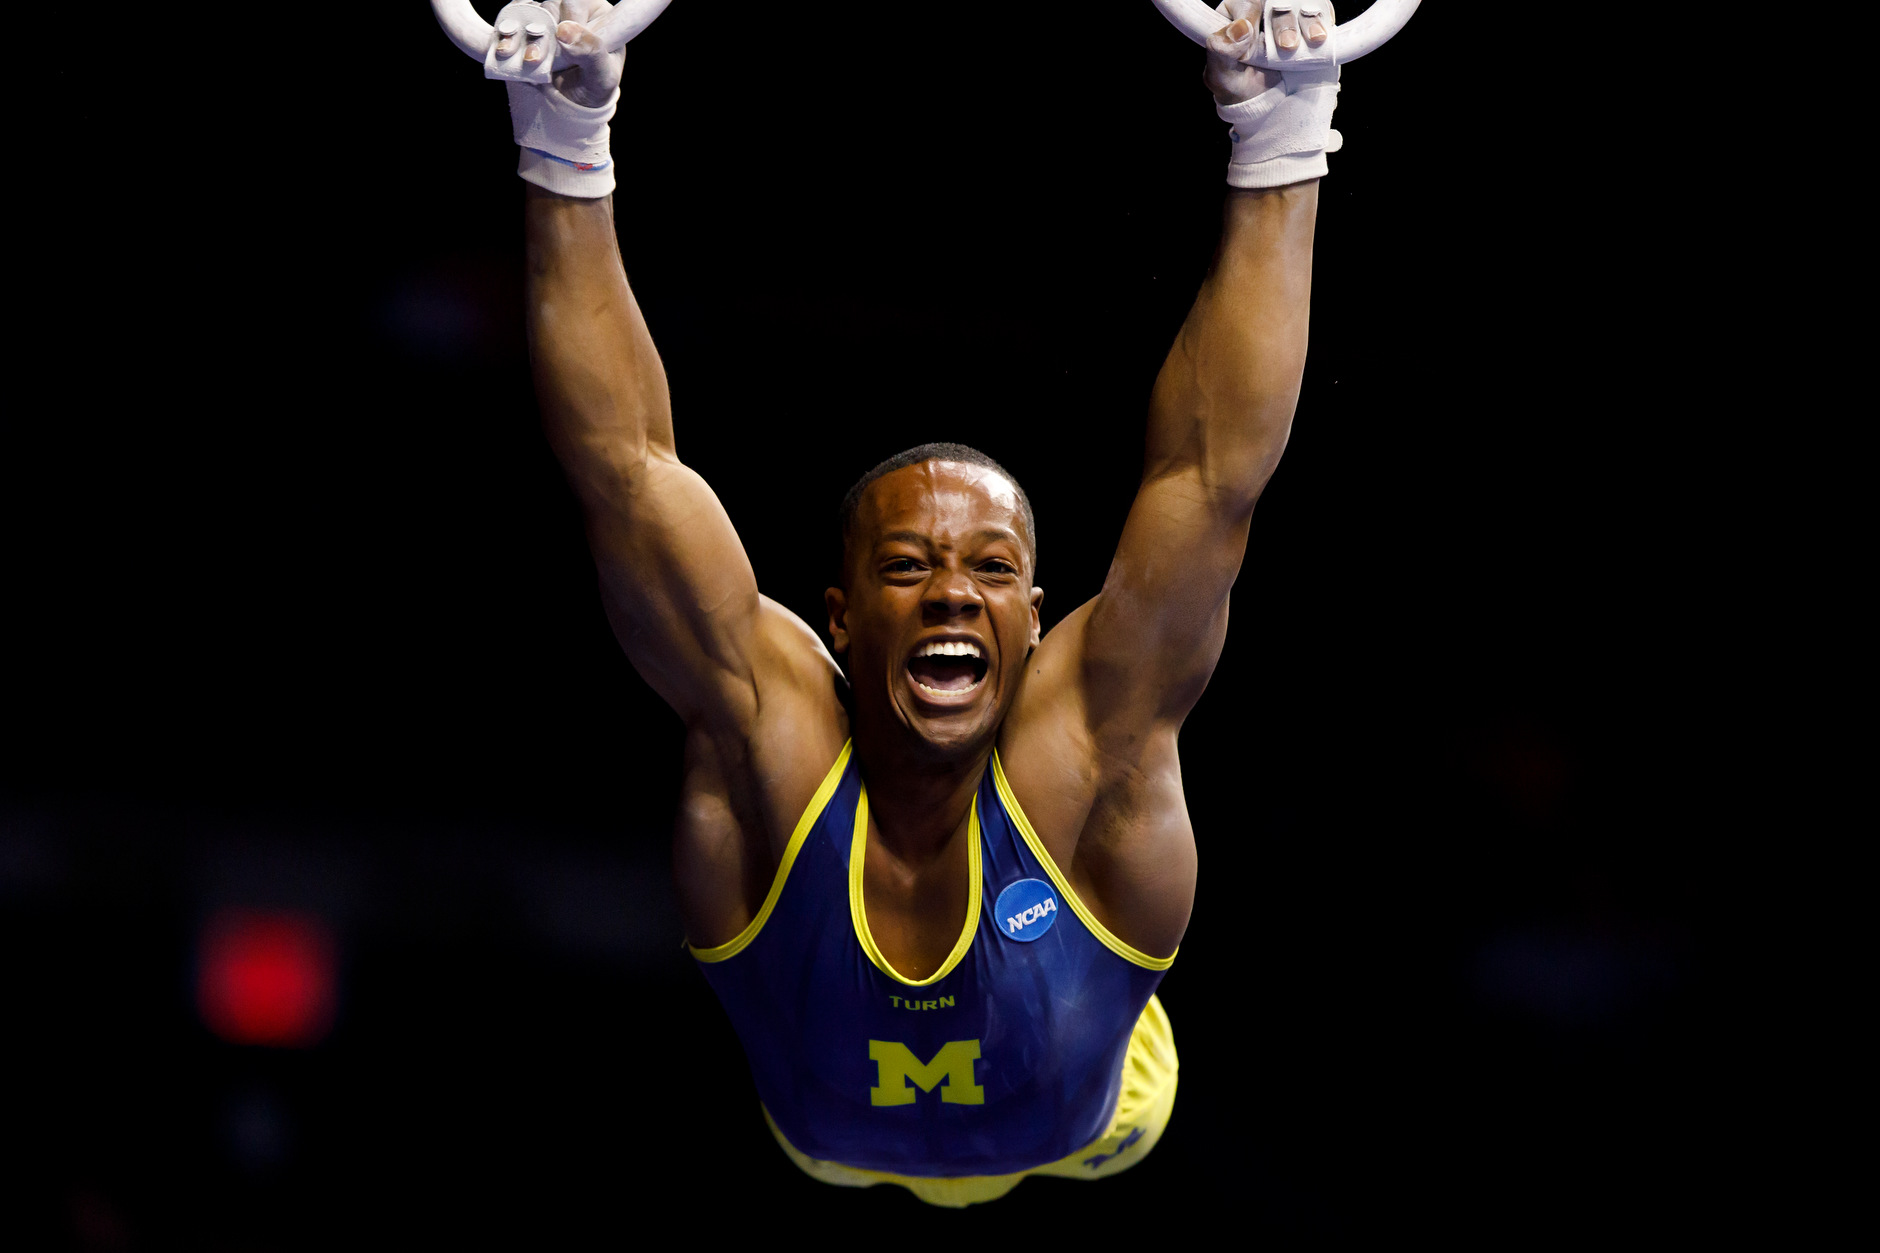 Michigan's Emyre Cole competes on the rings at the NCAA Men's Gymnastics Championships on Saturday, April 20, 2019, at the State Farm Center in Champaign, Illinois. (Photo by James Brosher)